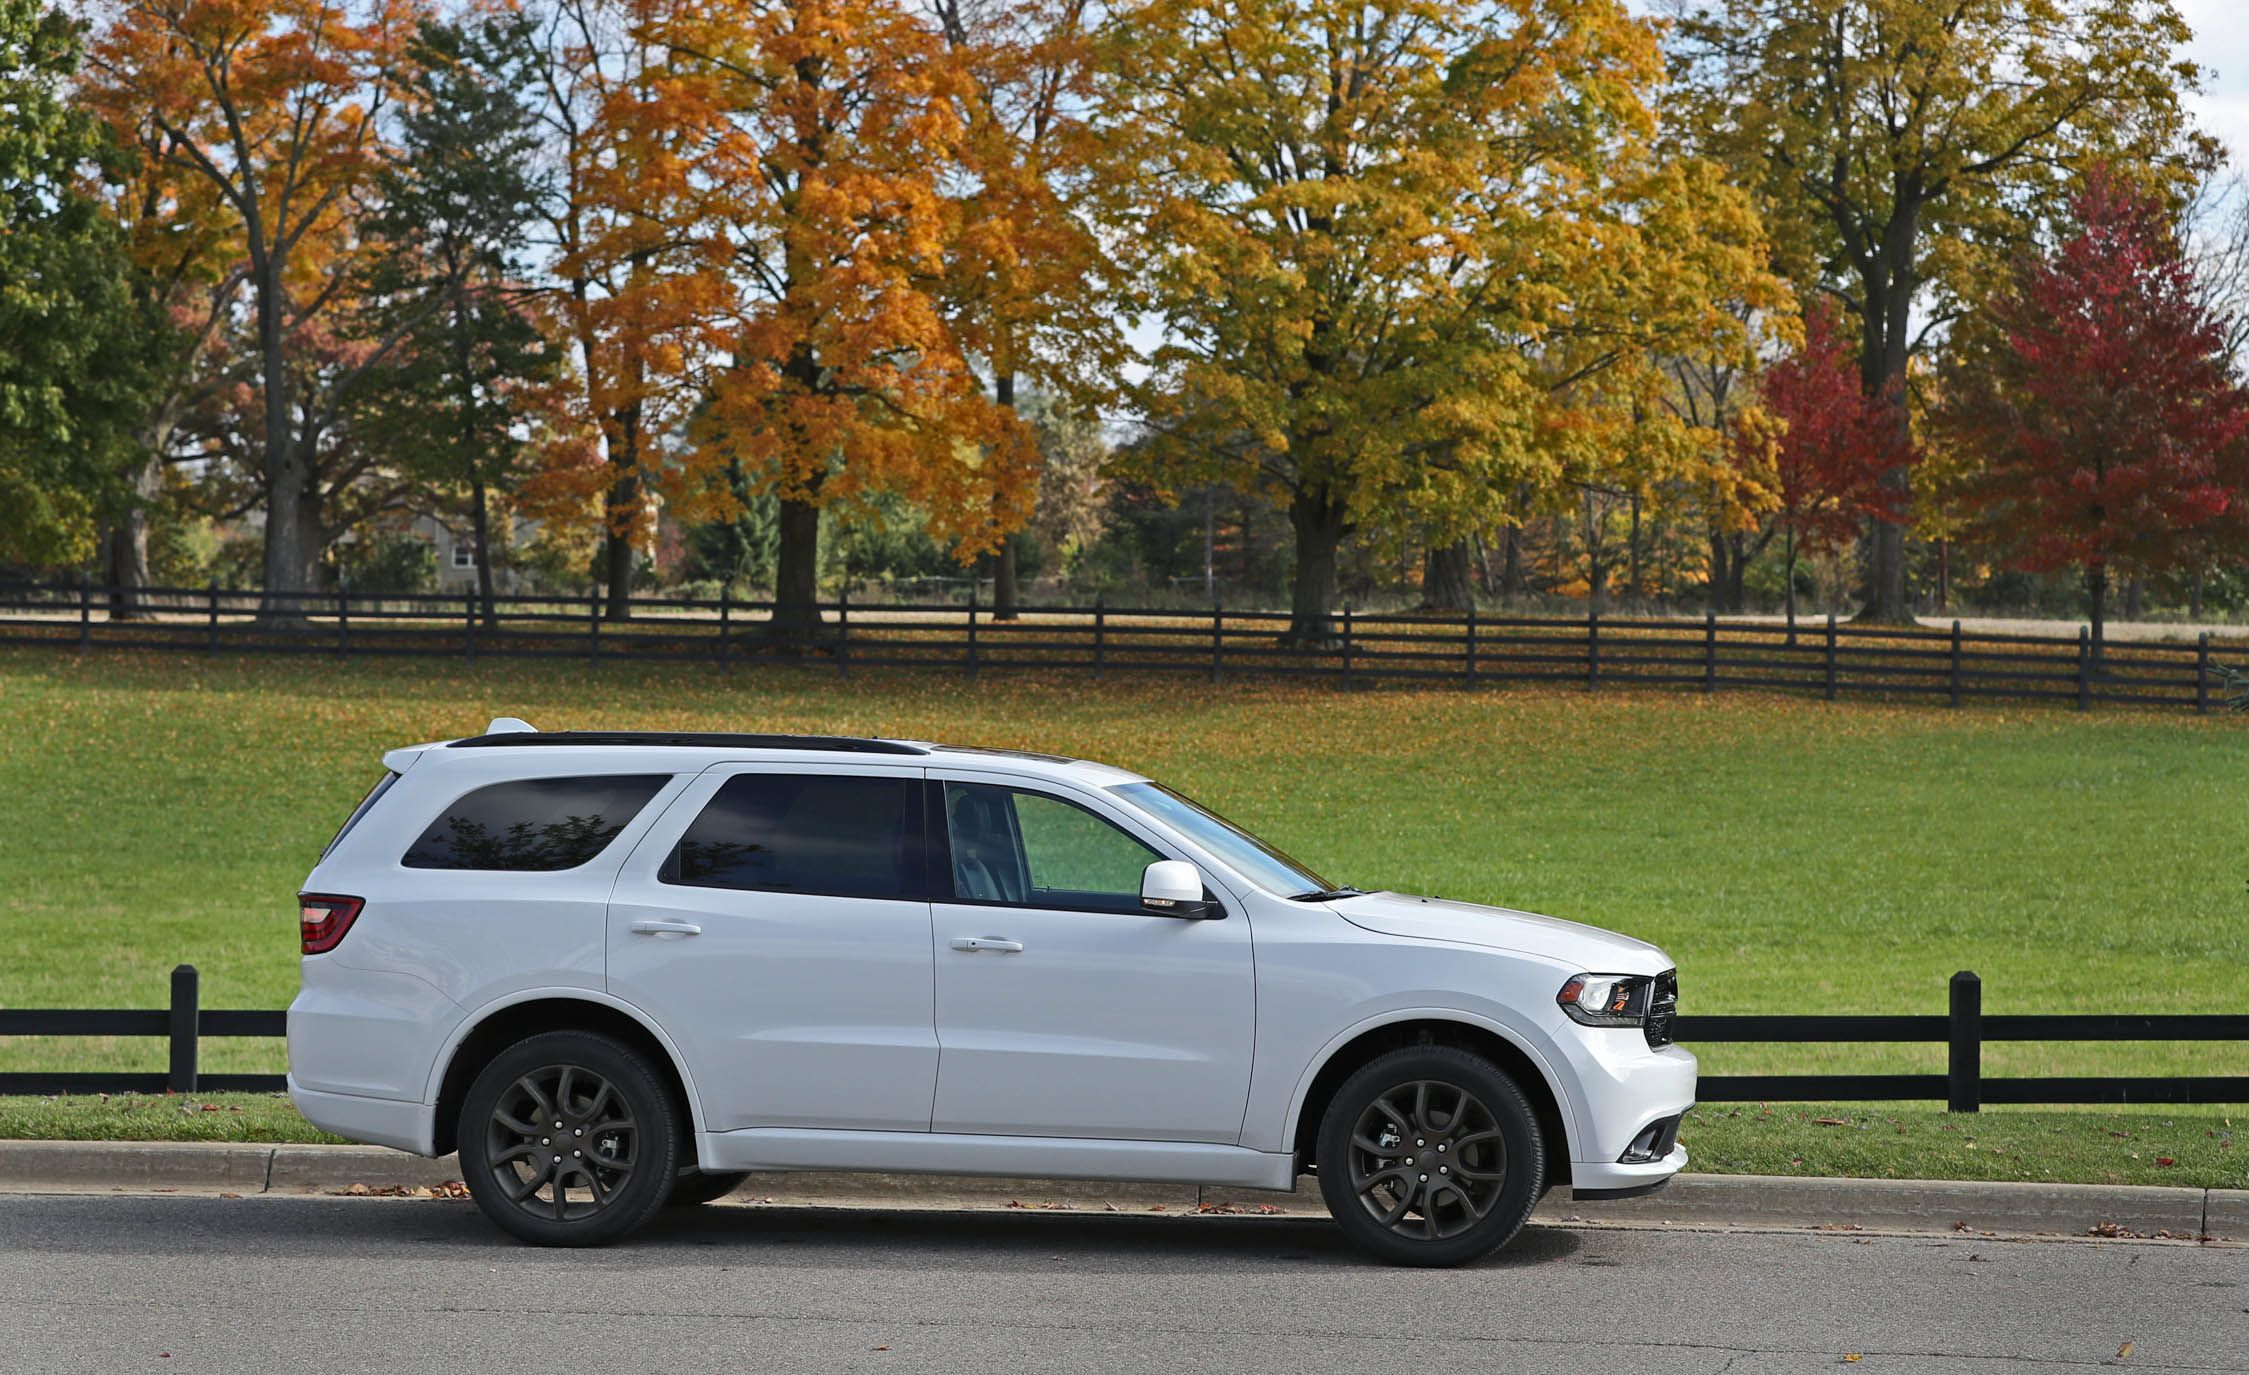 2018 Dodge Durango Interior Review Car And Driver